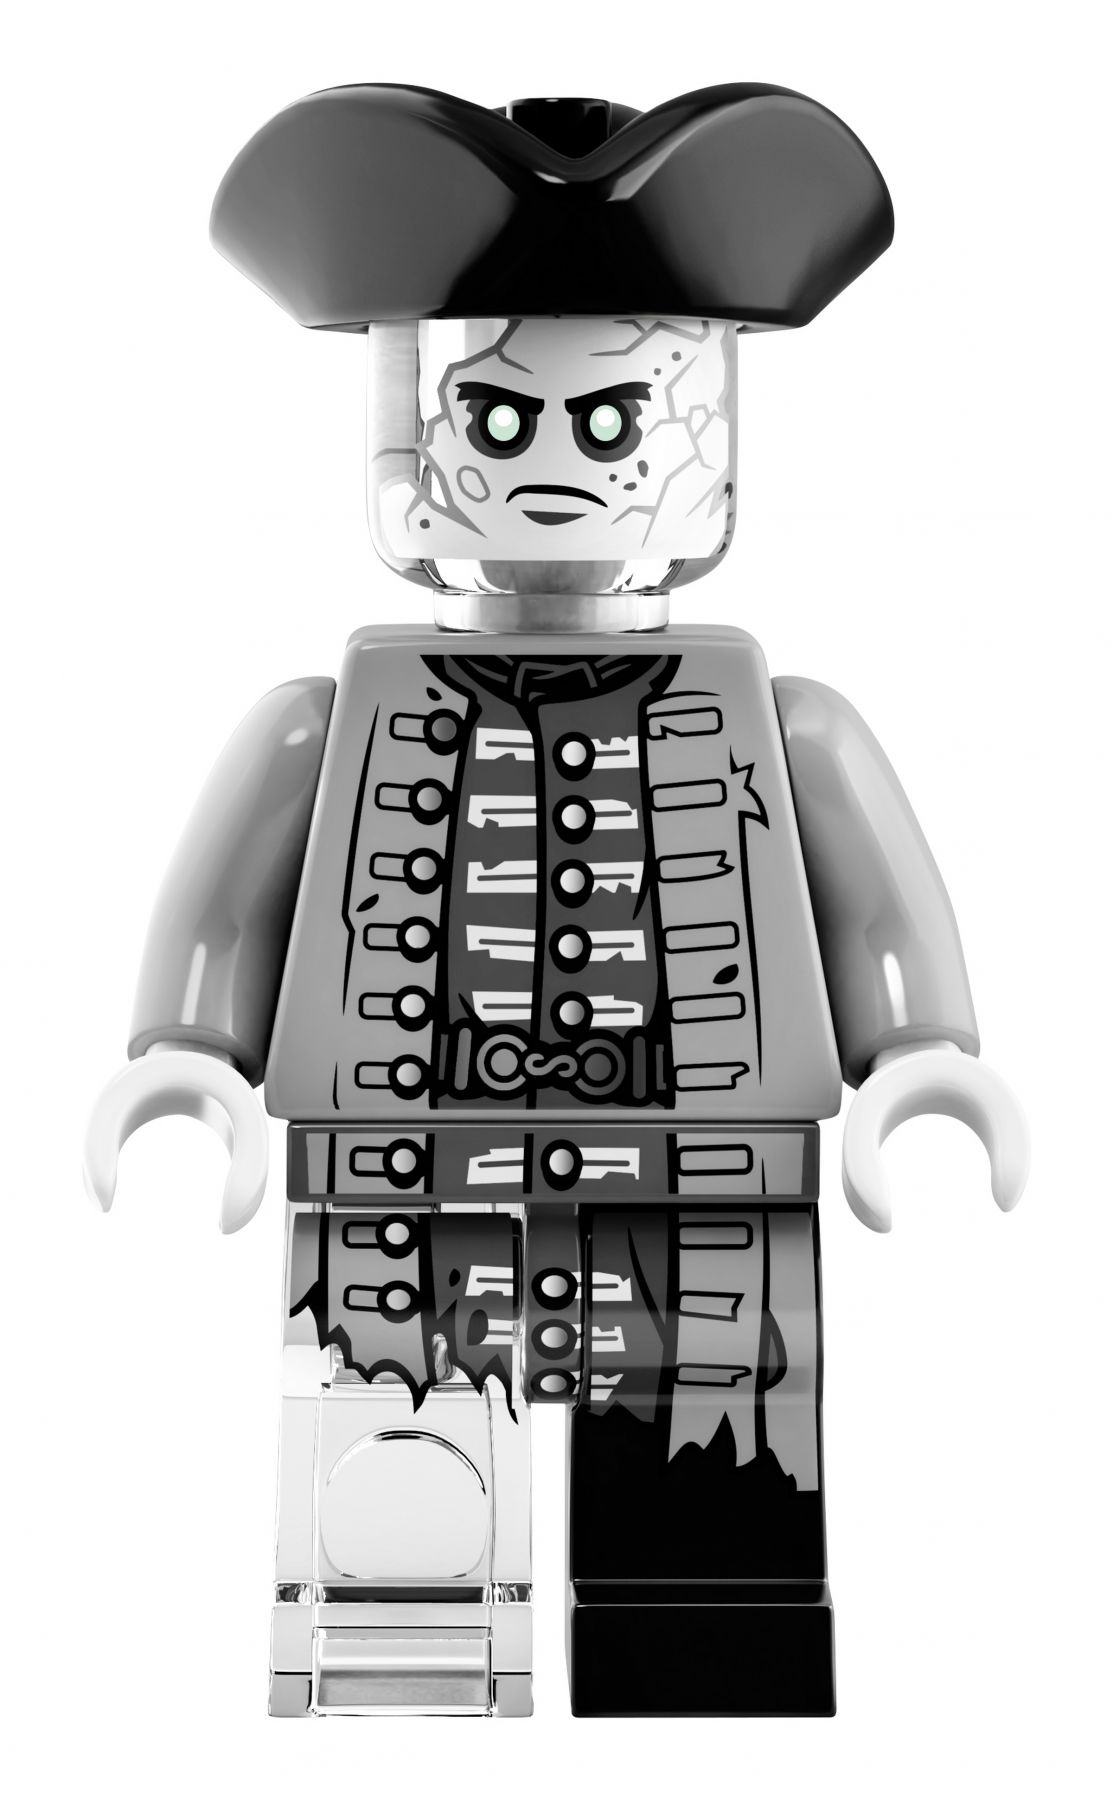 LEGO Advanced Models 71042 Silent Mary LEGO_71042_alt8.jpg